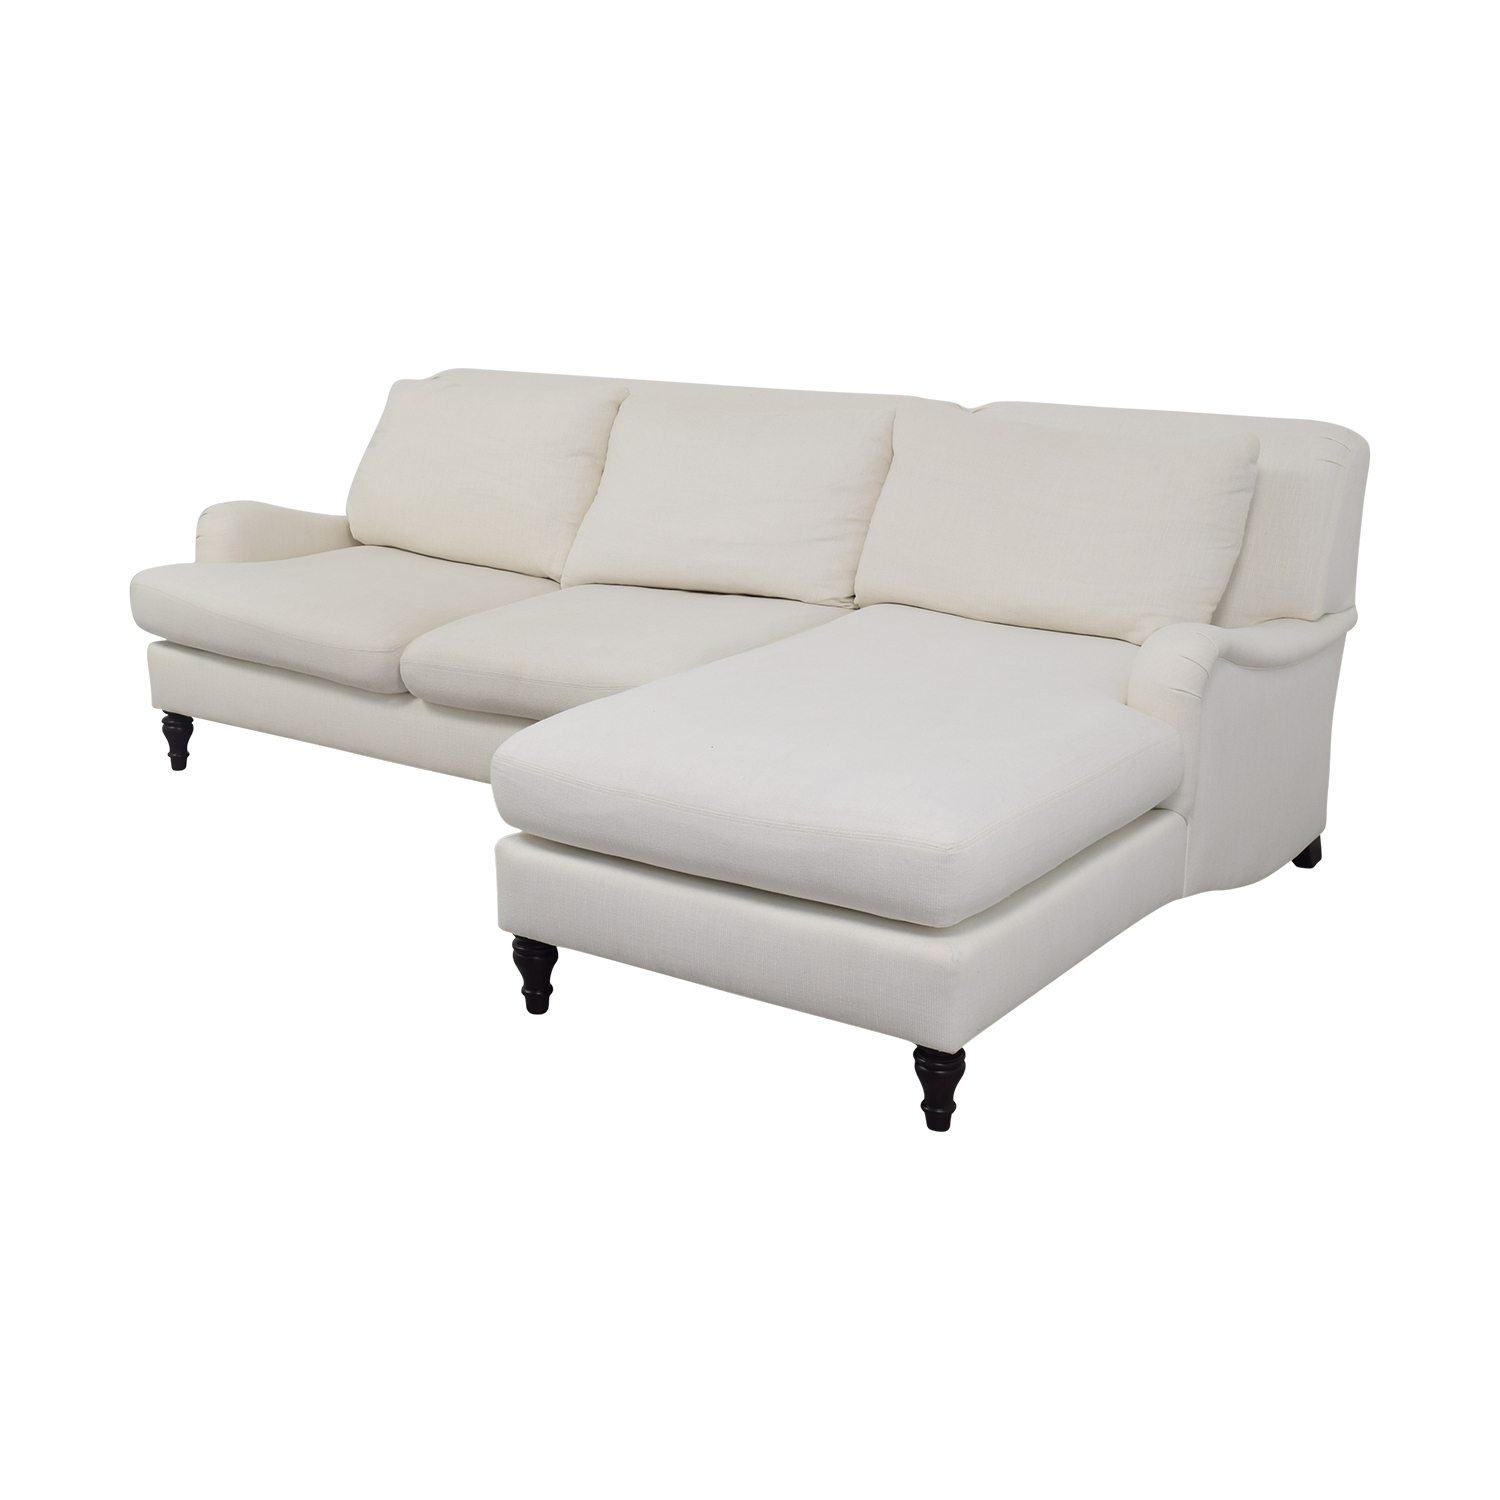 [%42% Off – Pottery Barn Pottery Barn Carlisle White Chaise Pertaining To Well Liked Pottery Barn Chaises|Pottery Barn Chaises Inside Most Recent 42% Off – Pottery Barn Pottery Barn Carlisle White Chaise|Newest Pottery Barn Chaises In 42% Off – Pottery Barn Pottery Barn Carlisle White Chaise|Favorite 42% Off – Pottery Barn Pottery Barn Carlisle White Chaise Pertaining To Pottery Barn Chaises%] (View 1 of 15)